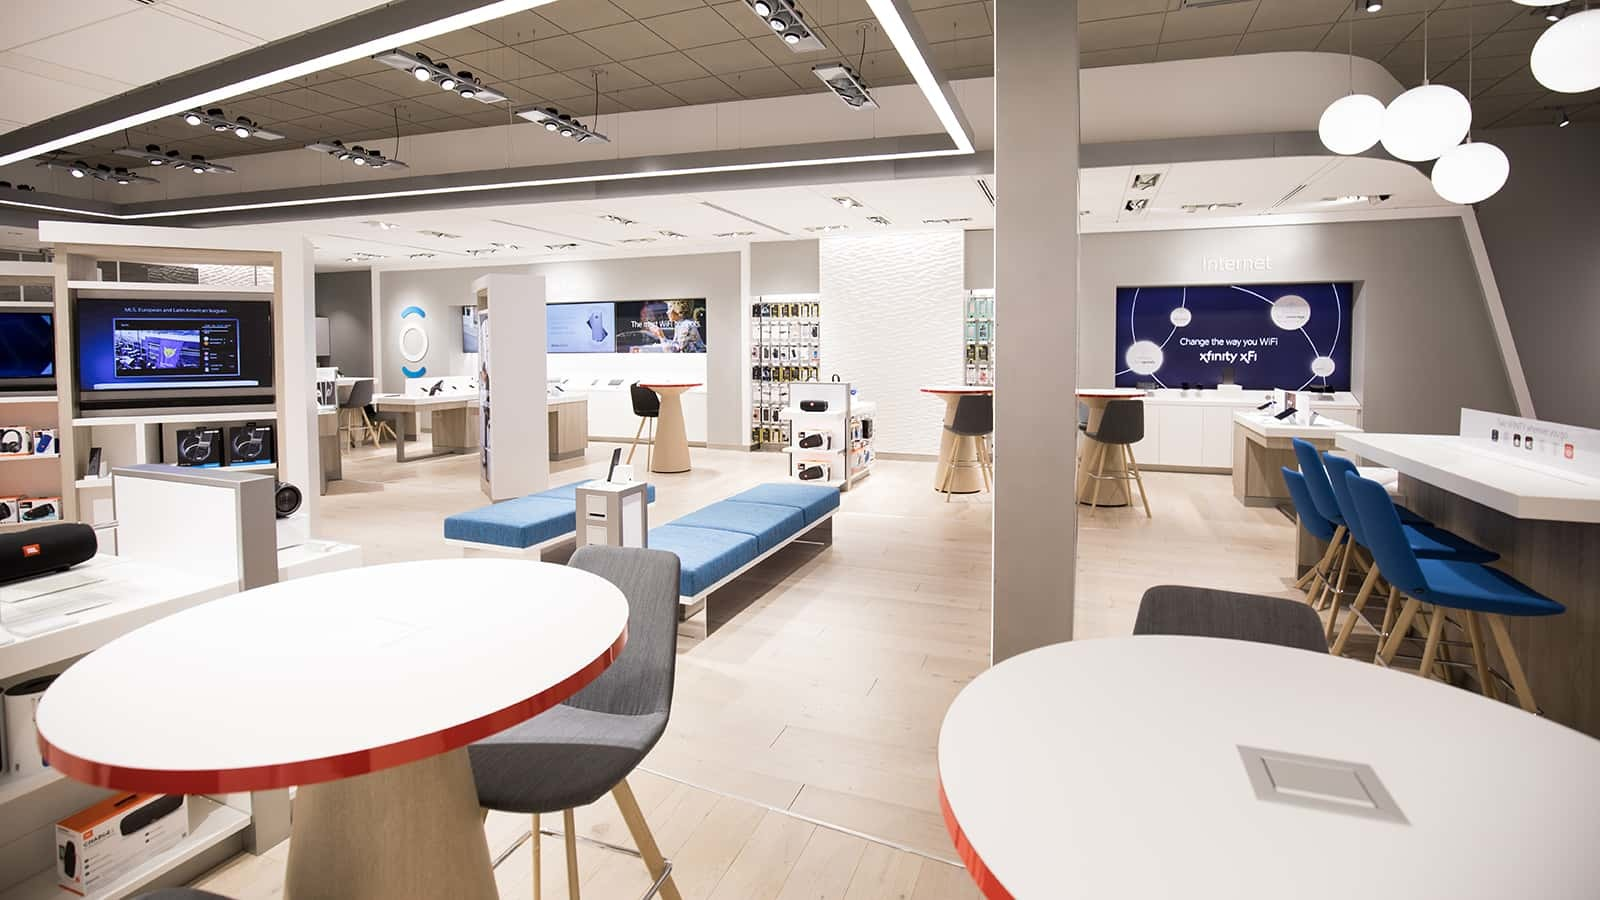 Waiting areas in the new Comcast Xfinity stores.